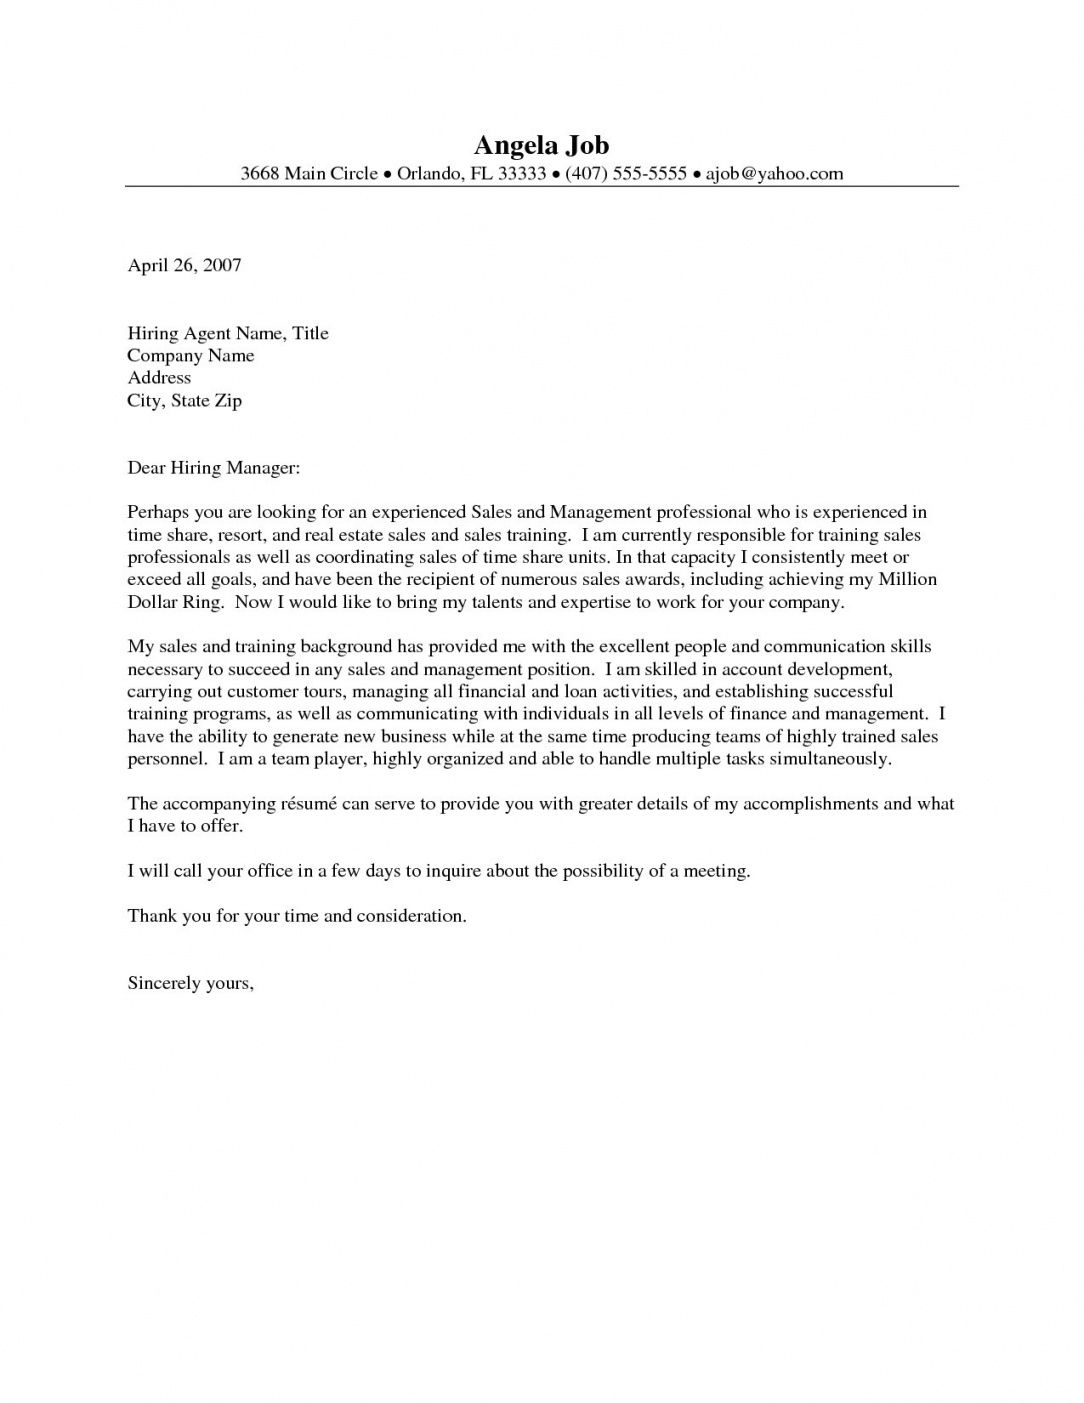 Real Estate Cover Letter Template In 2020 Business Letter Format Letter Templates Cover Letter Template